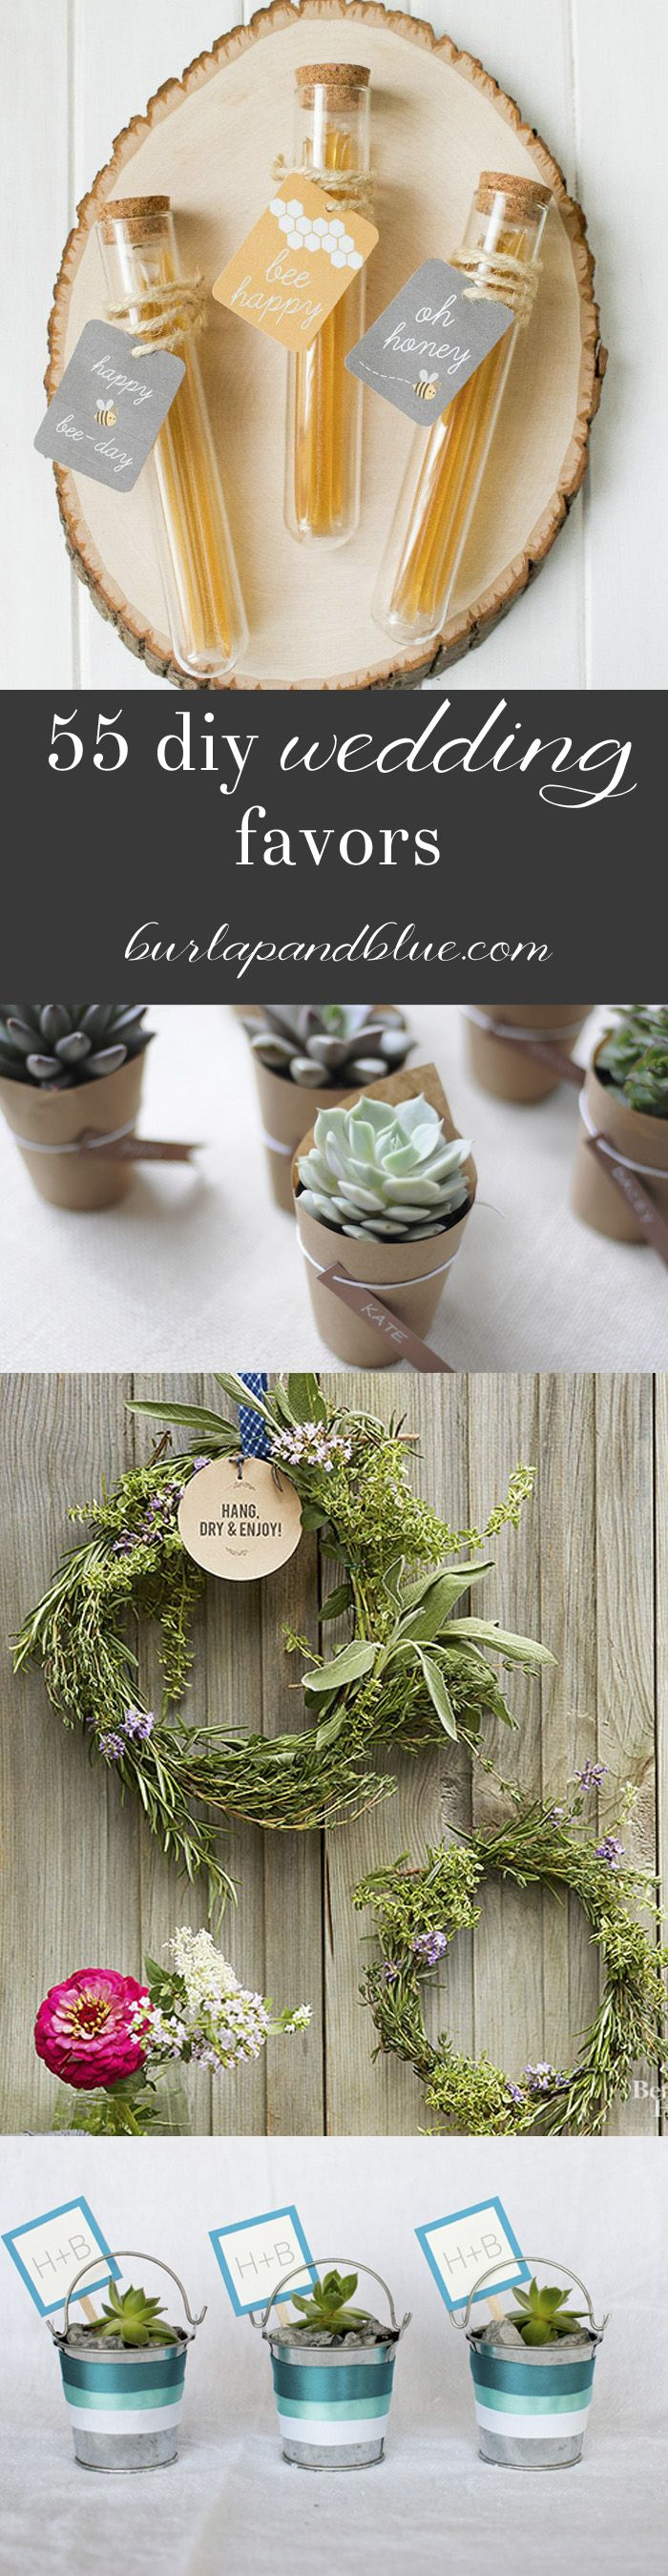 55 DIY Wedding Favors #weddingdiy #weddingfavor